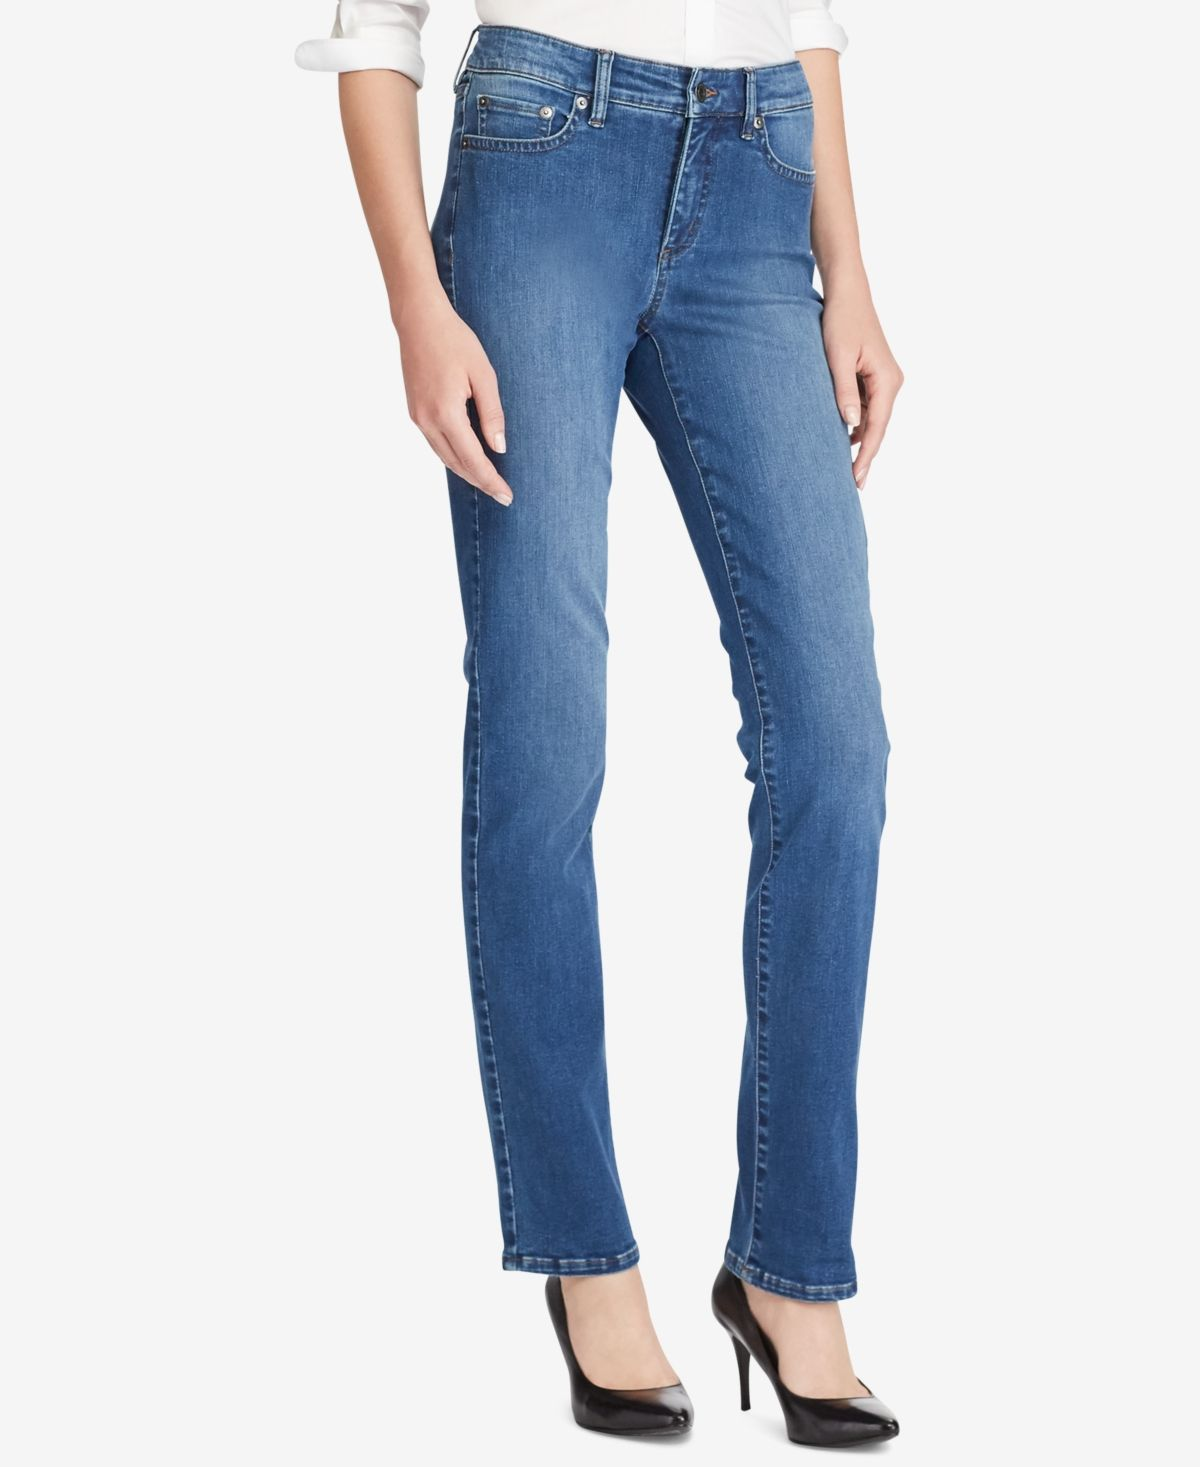 Part of Lauren Ralph Lauren's Ultimate Slimming collection, these Premier straight jeans' high rise and stretch-and-recovery properties make them a flattering choice for day or after dark.